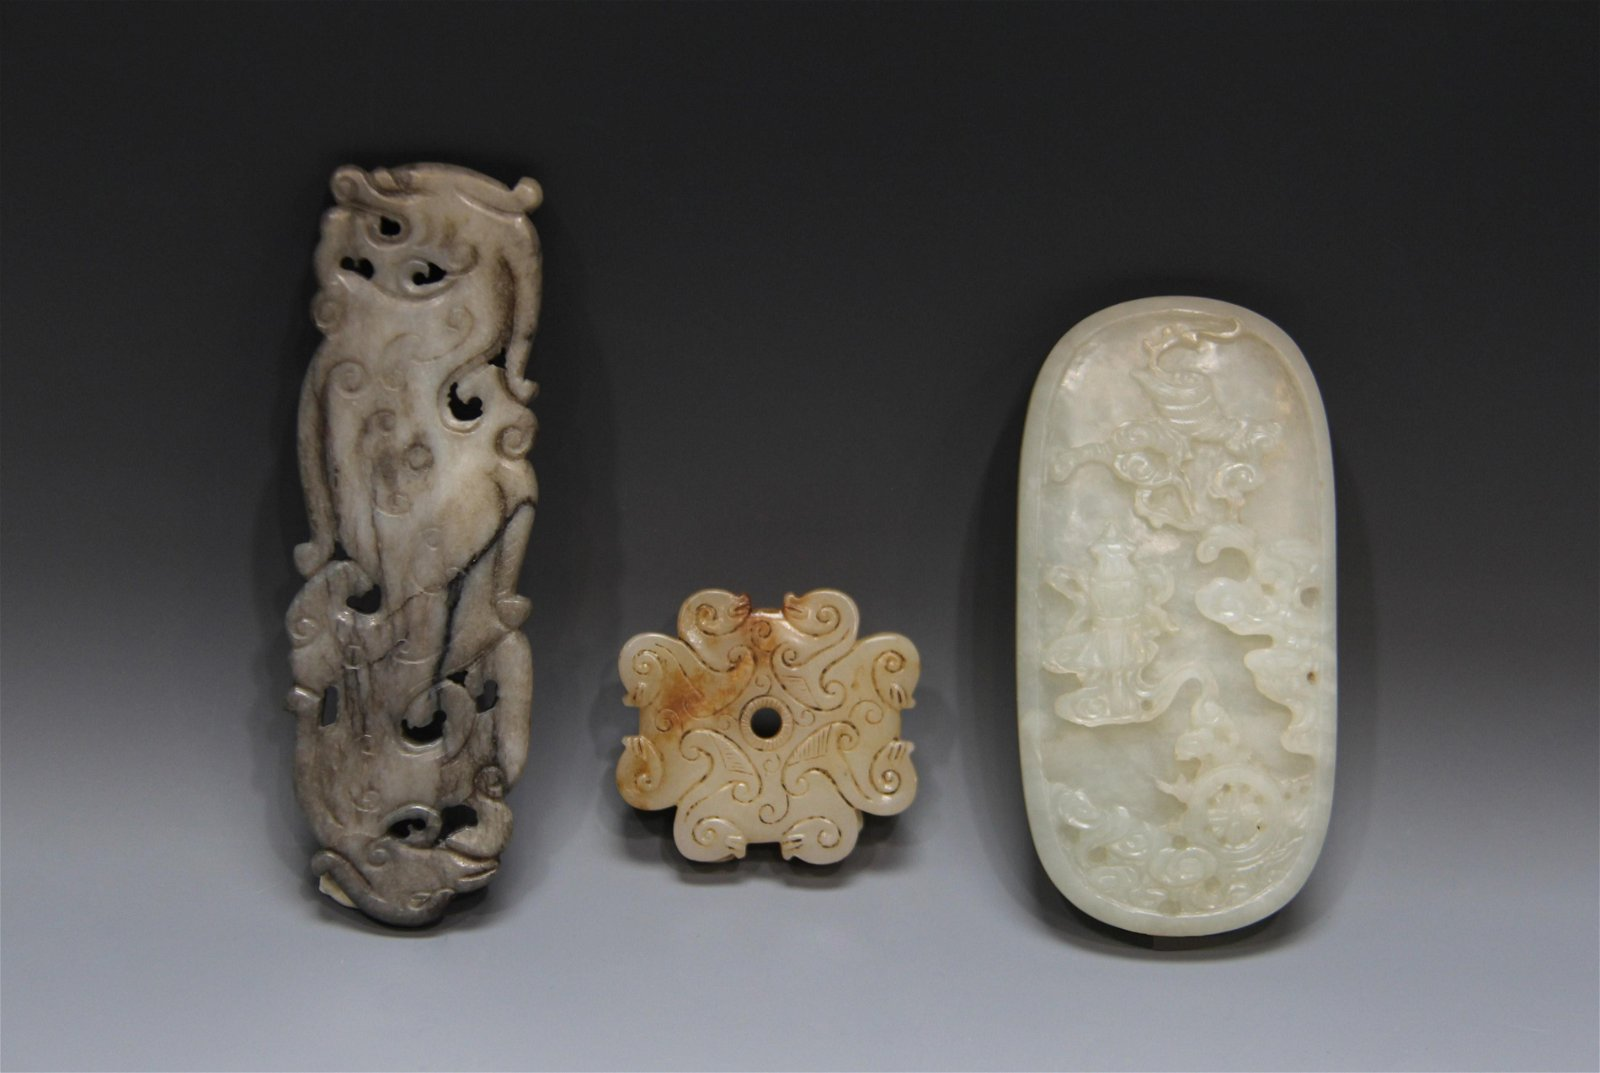 Qing Dynasty - Three Carved Jade Pendant